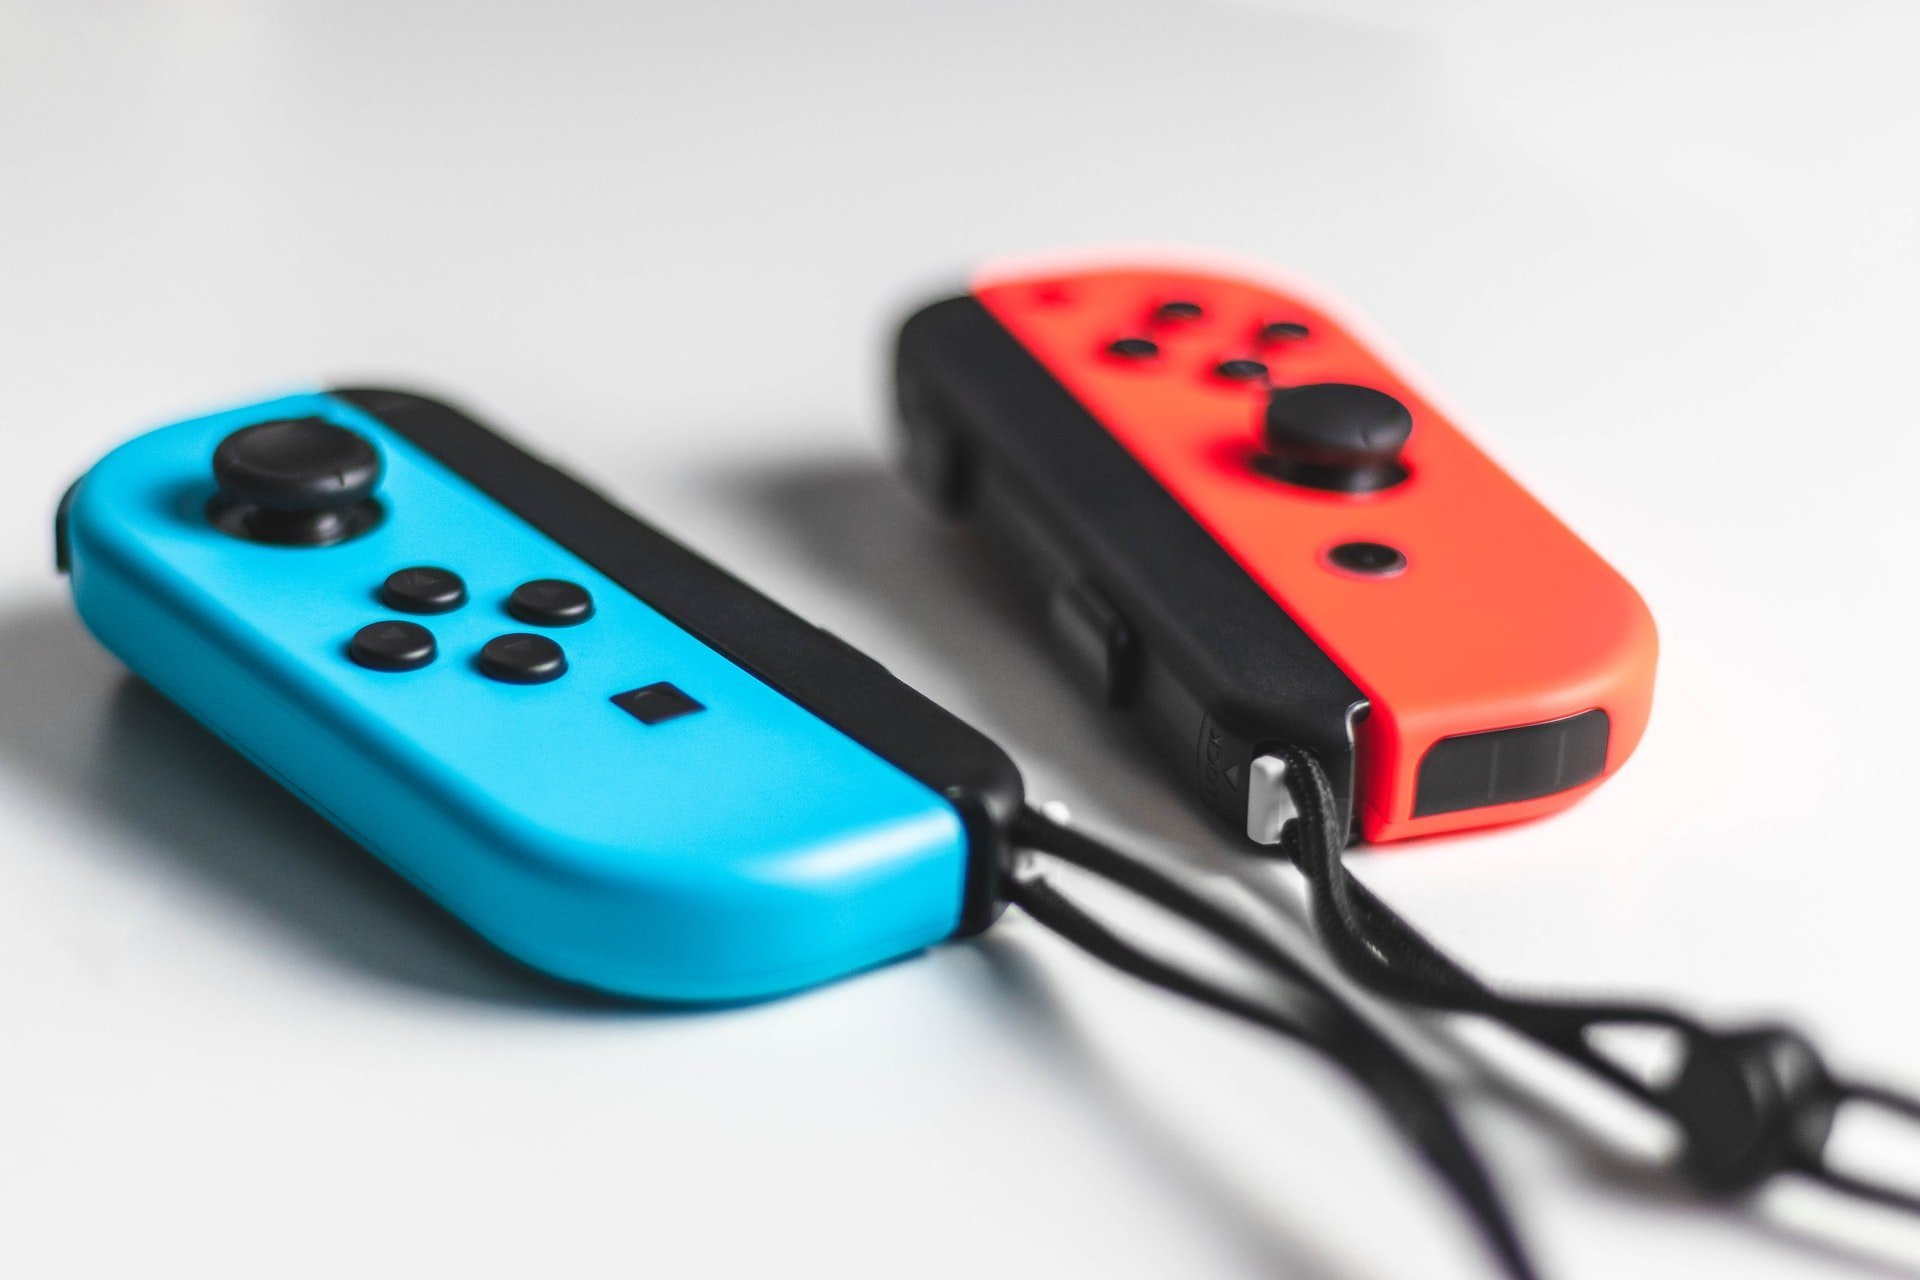 Nintendo Switch et « obsolescence programmée » : nouvelle plainte en Europe contre les Joy-Con